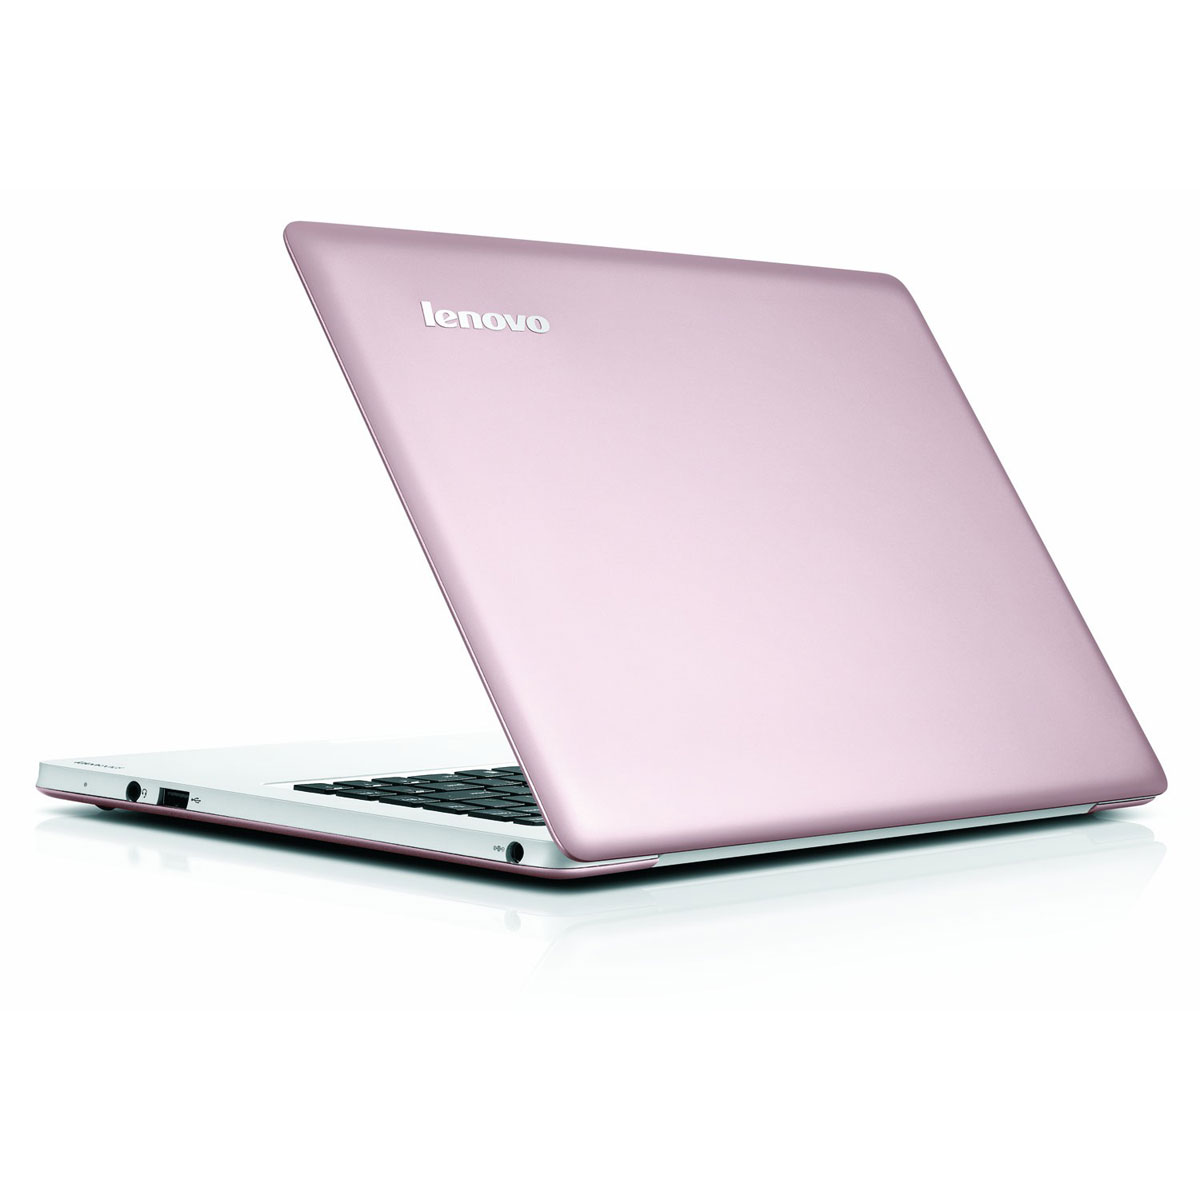 lenovo ideapad u310 mag64fr rose pc portable lenovo sur ldlc. Black Bedroom Furniture Sets. Home Design Ideas